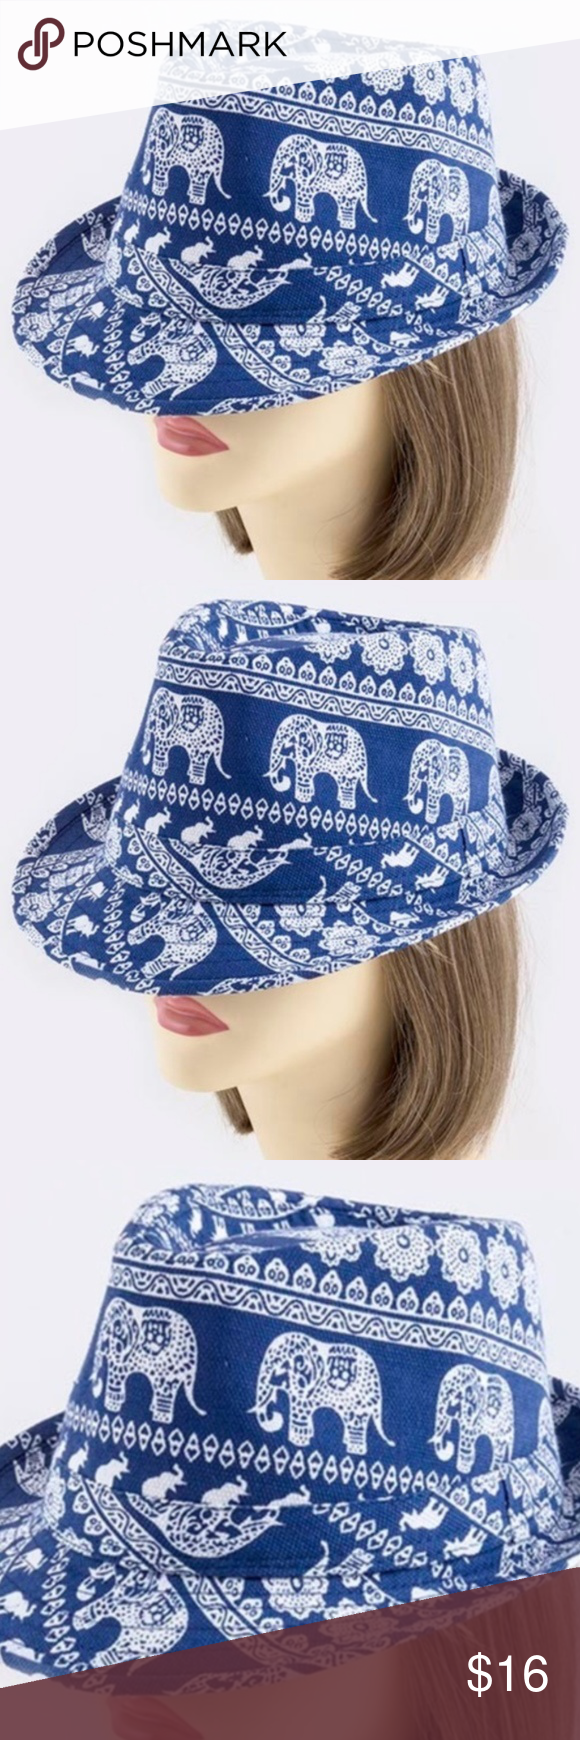 ELEPHANT FEDORA HAT NWT- ONE SIZE FITS MOST / BLUE FASHION BOUTIQUE Accessories Hats #fedoras